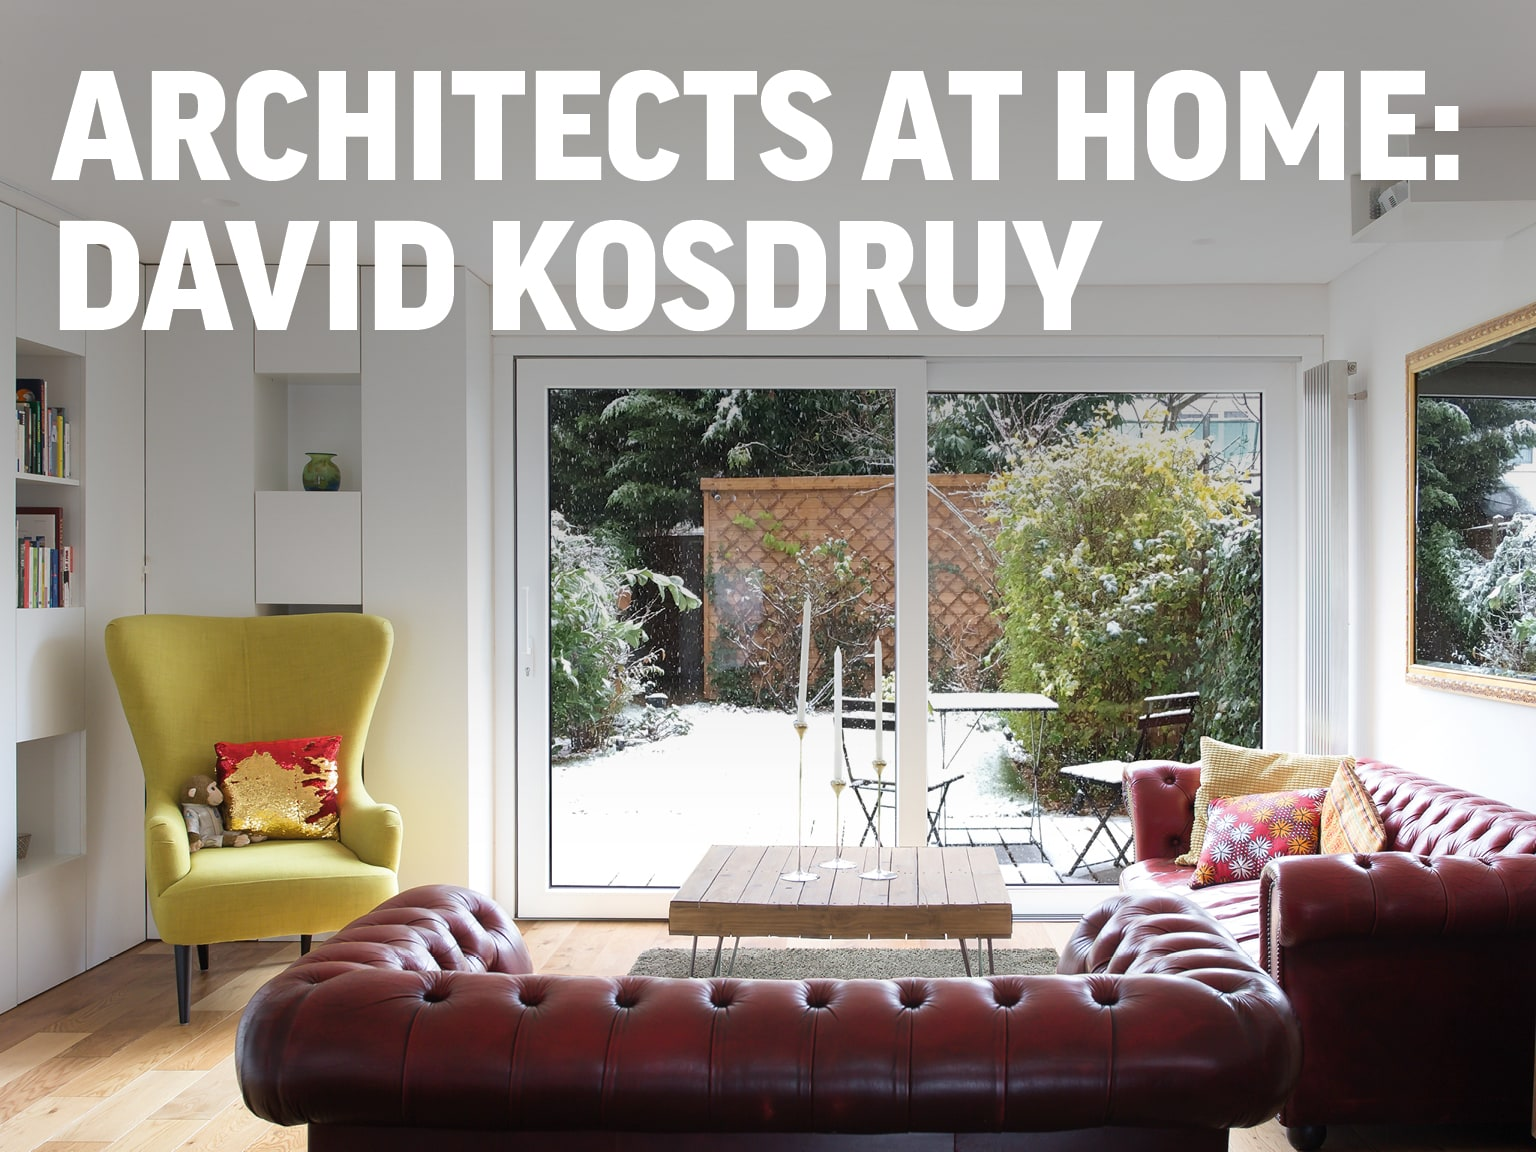 Architects at Home: David Kosdruy